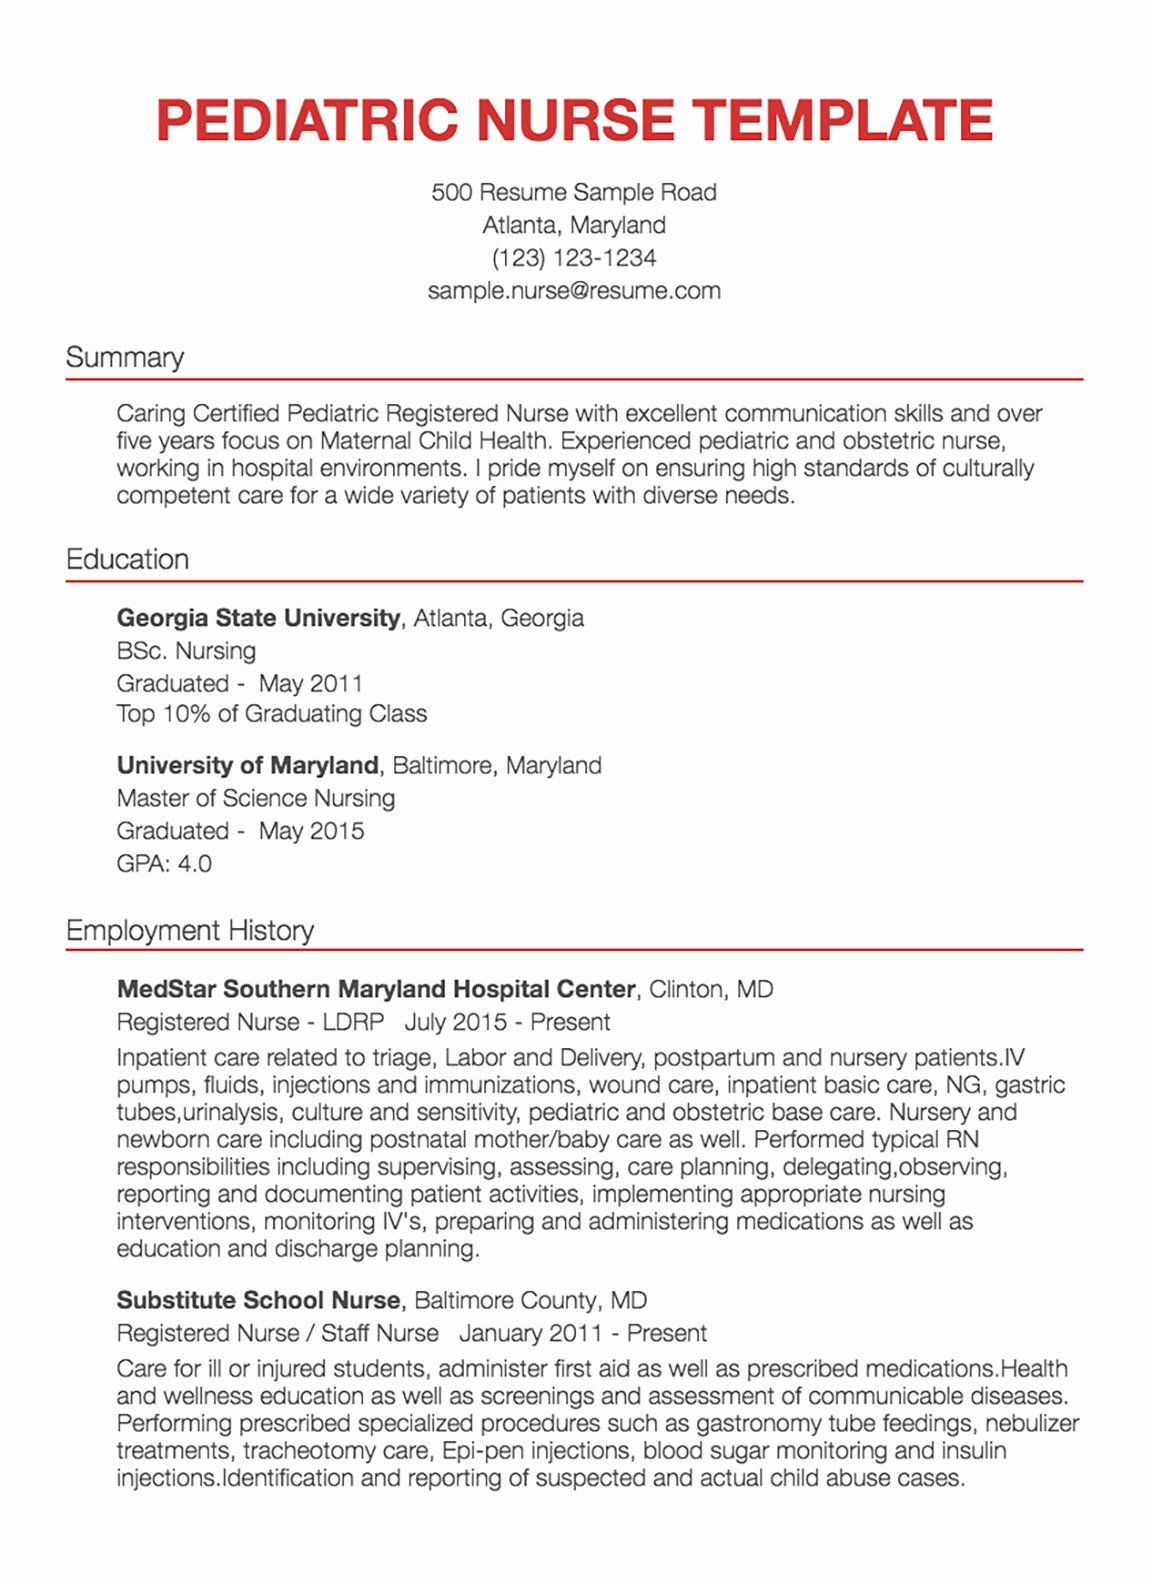 Nursing Clinical Experience Resume New 30 Nursing Resume Examples Samples Written By Rn Managers In 2020 Nursing Resume Examples Resume Examples Nursing Resume